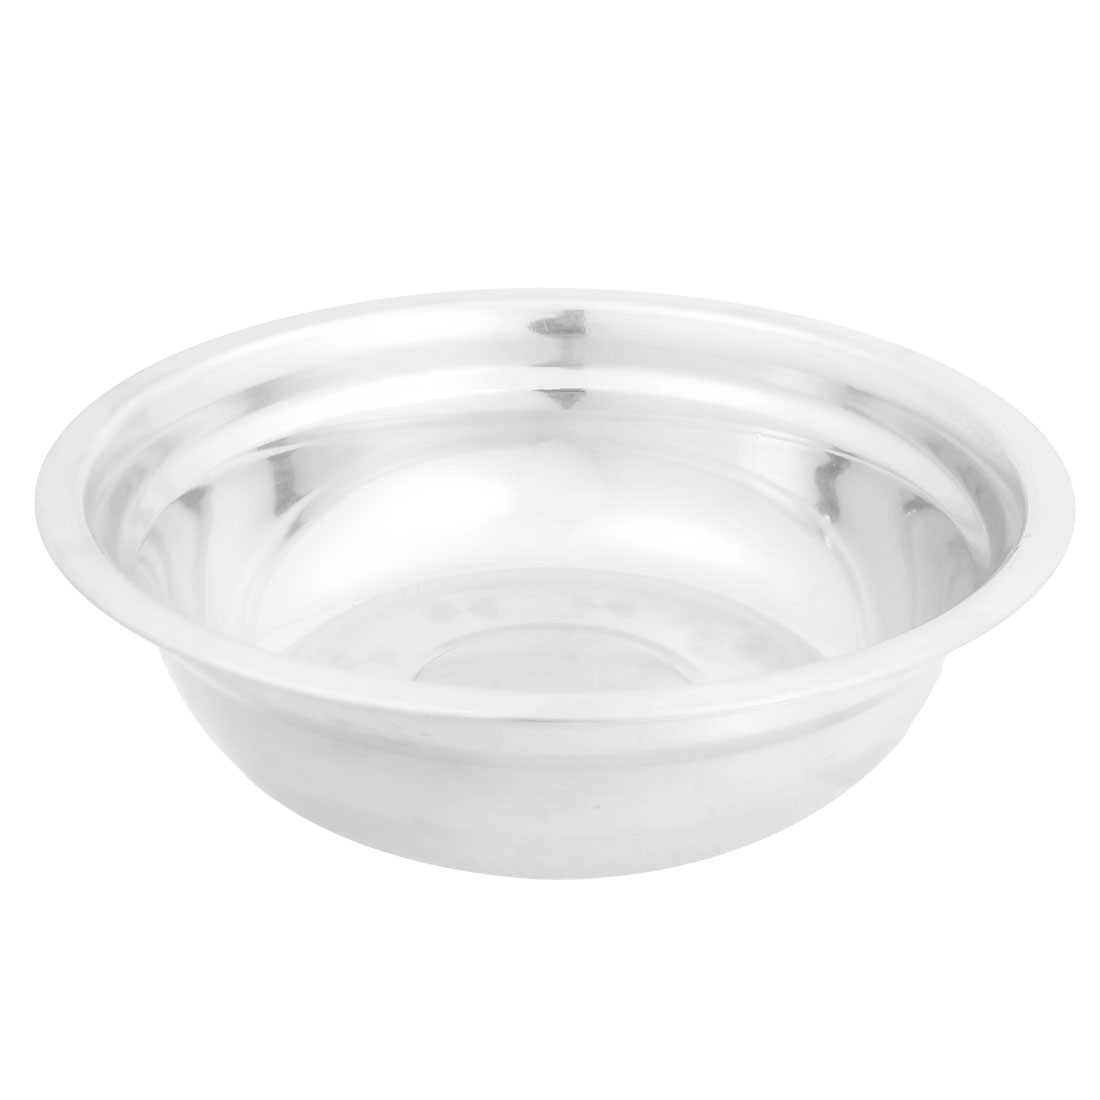 "Kitchen 7.5"" Diameter Stainless Steel Dinner Bowl Silver Tone"